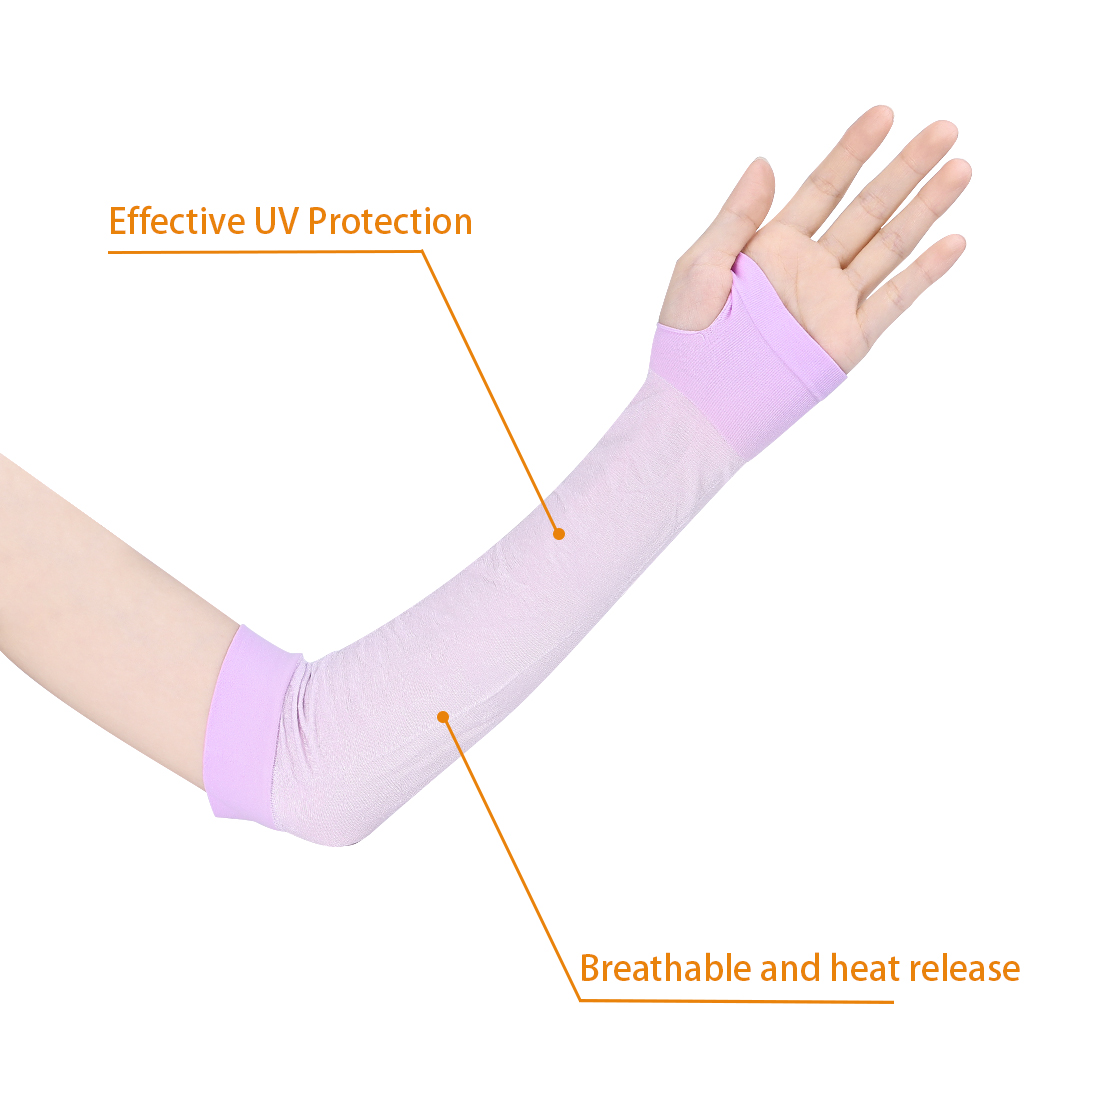 UV Protection Reflective Arm Cooling Sleeves Outdoor Sports for Men Women Purple - image 2 of 5